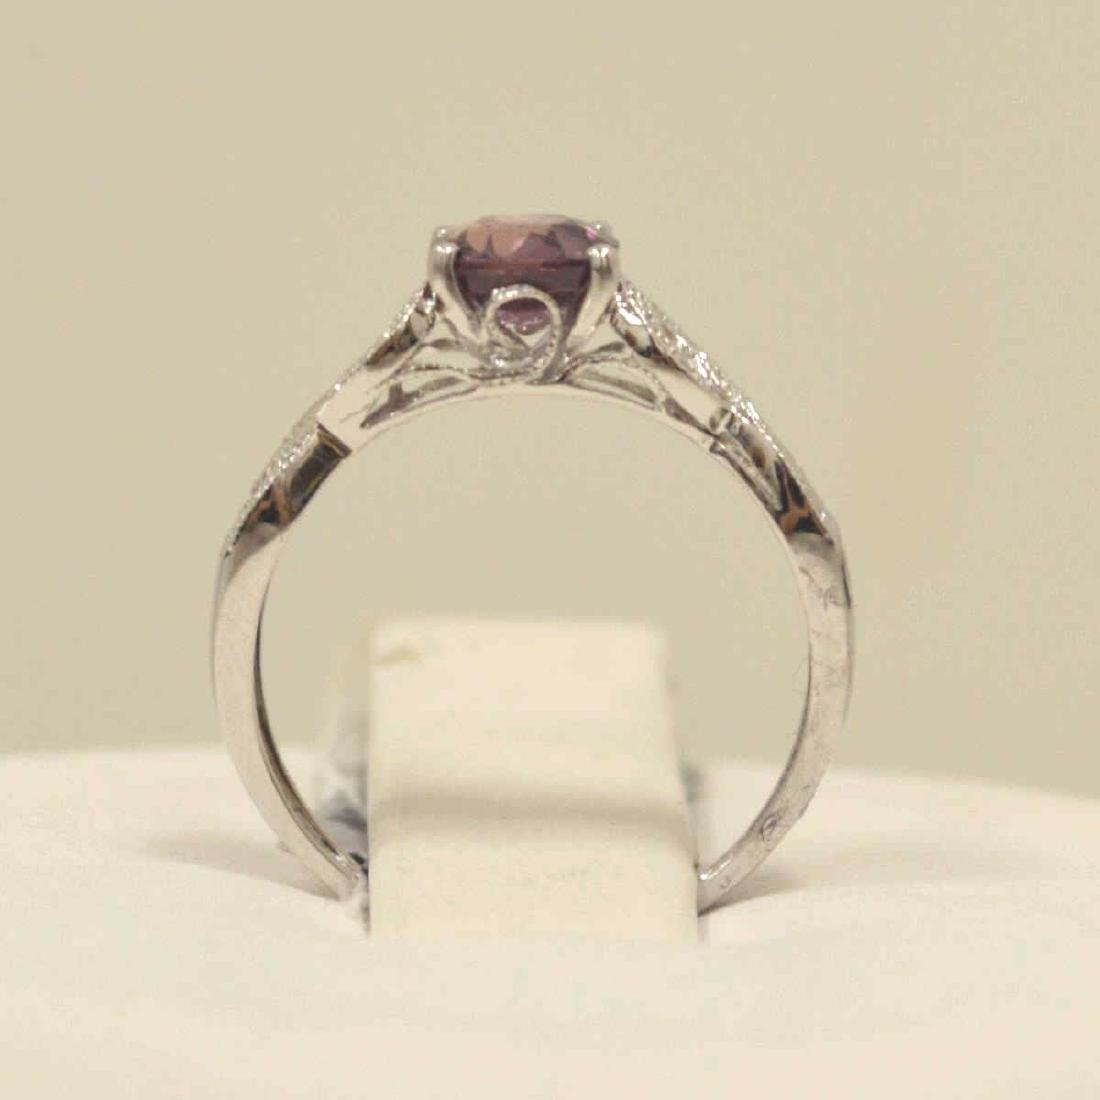 18kt white pink sapphire and diamond ring - 3